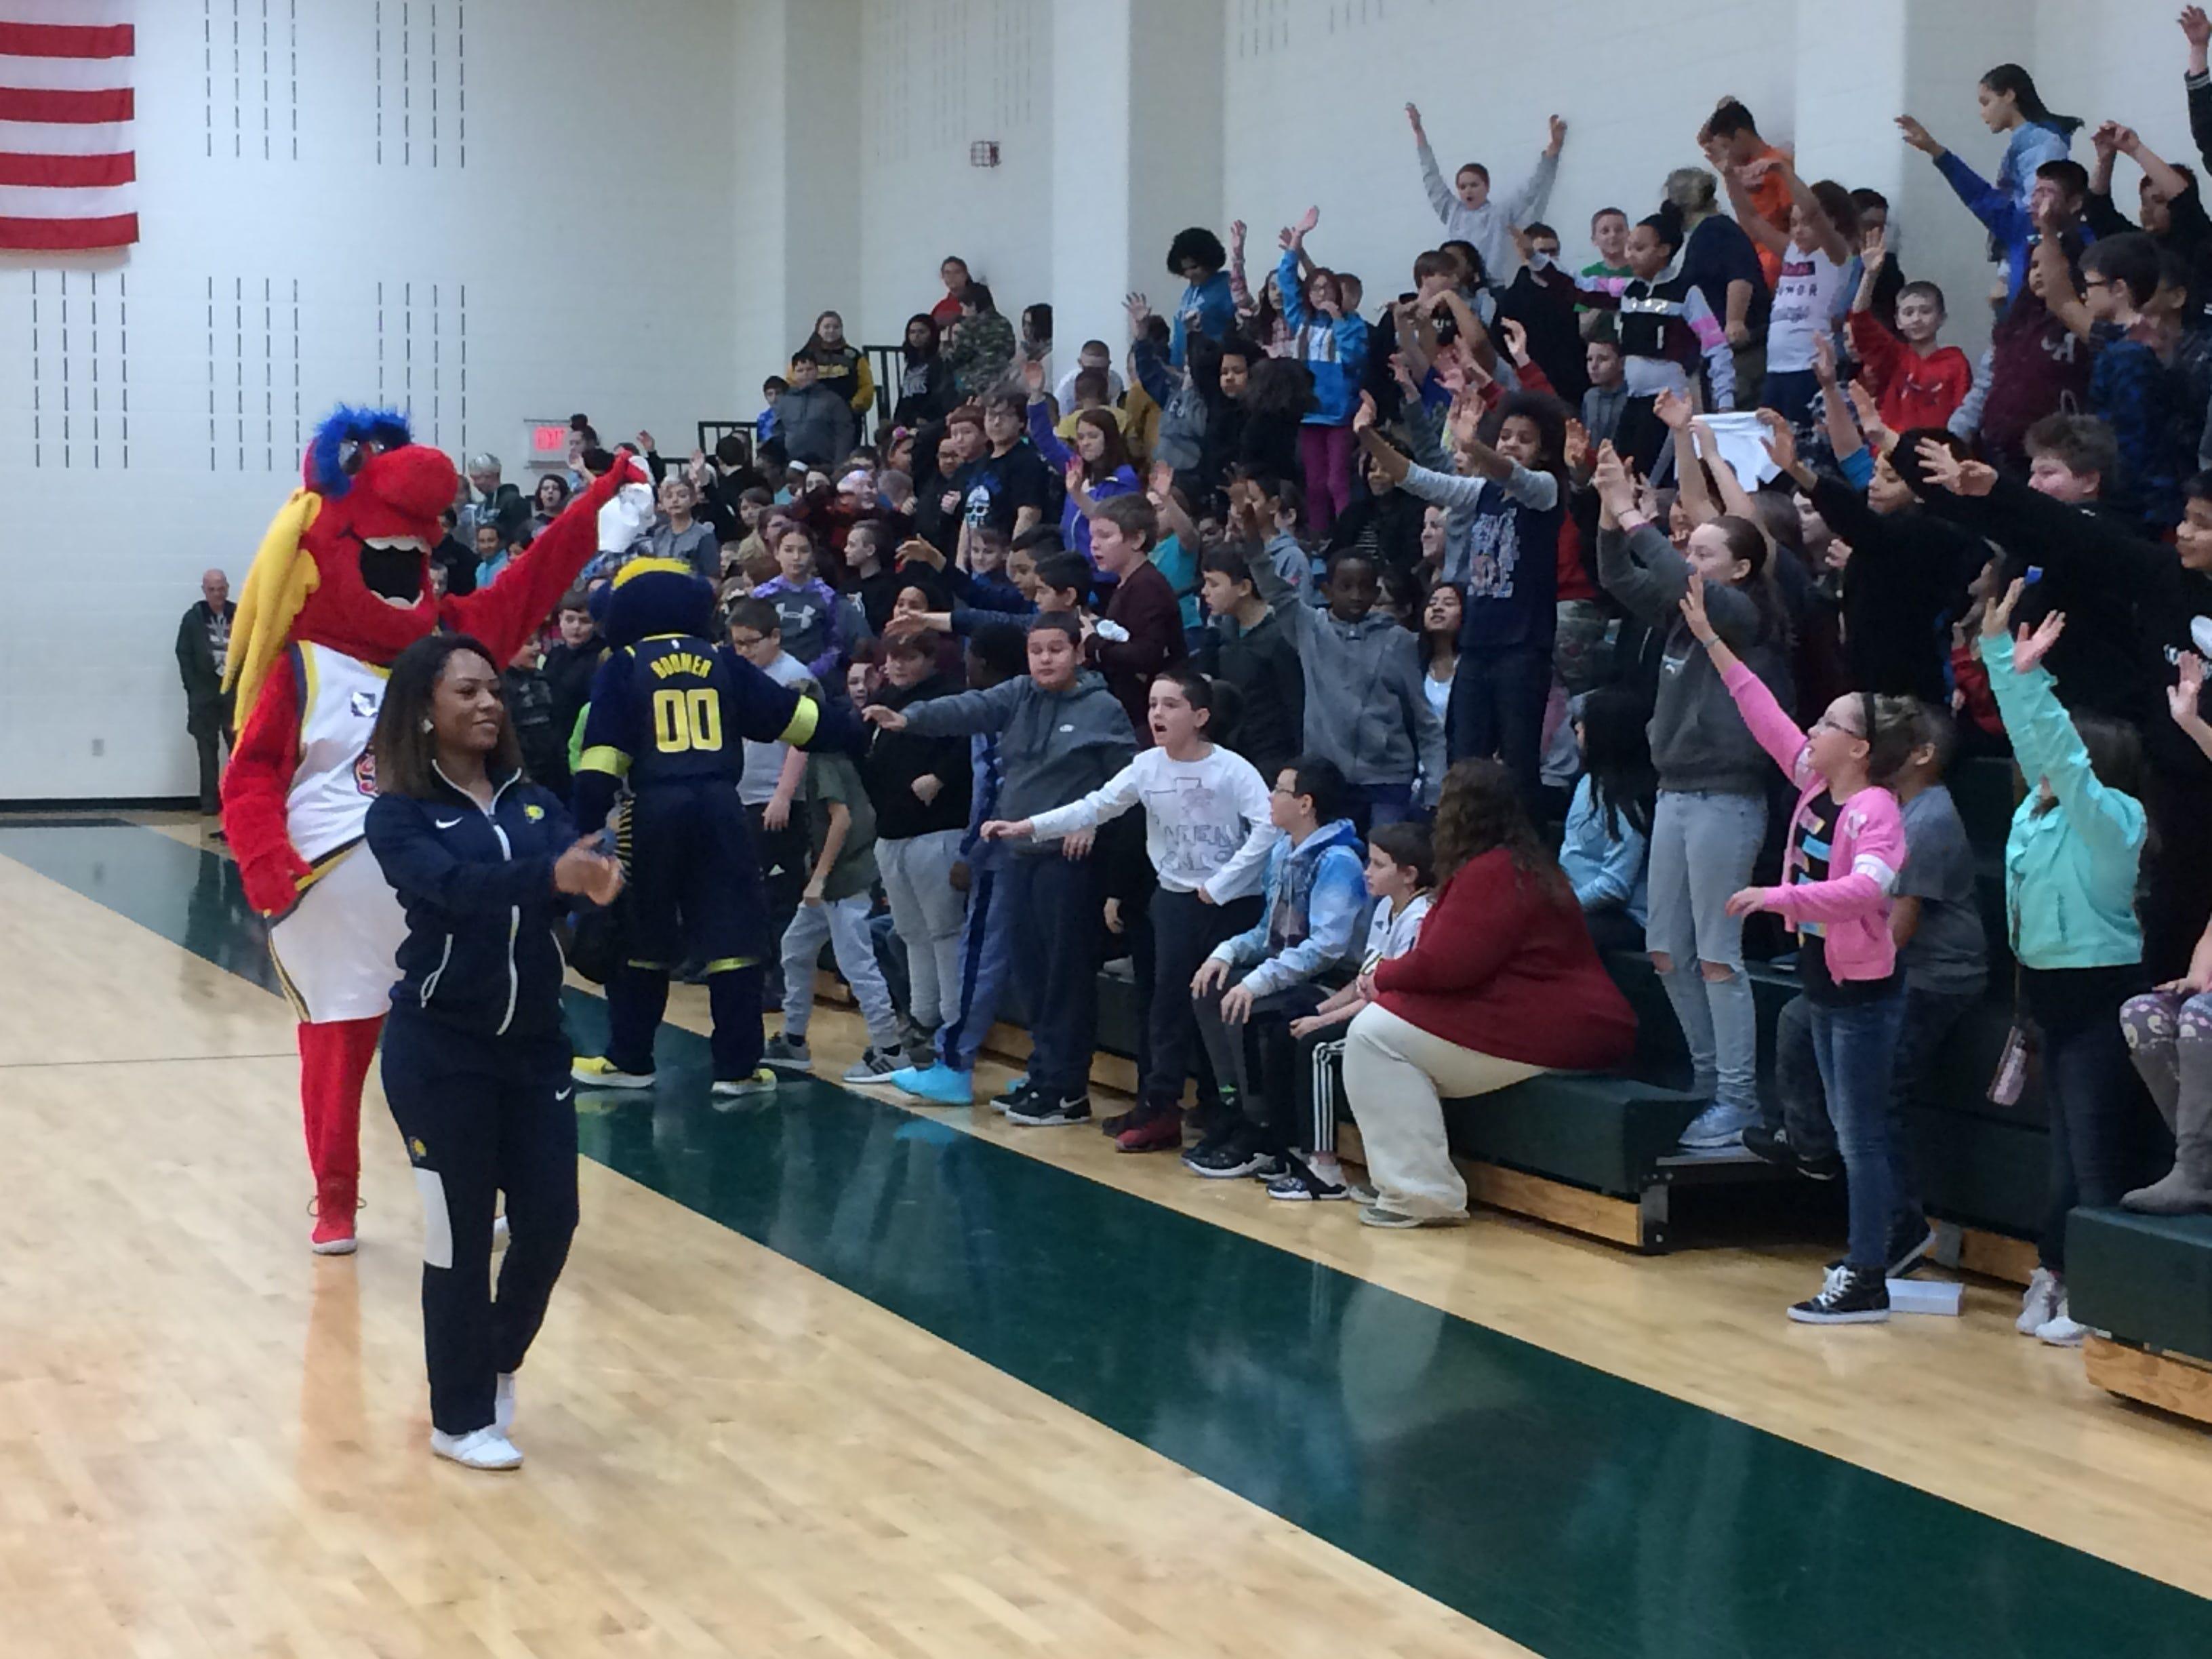 Pacemate Shania, Freddy Fever and Boomer distribute T-shirts to Dennis Intermediate School students Wednesday.